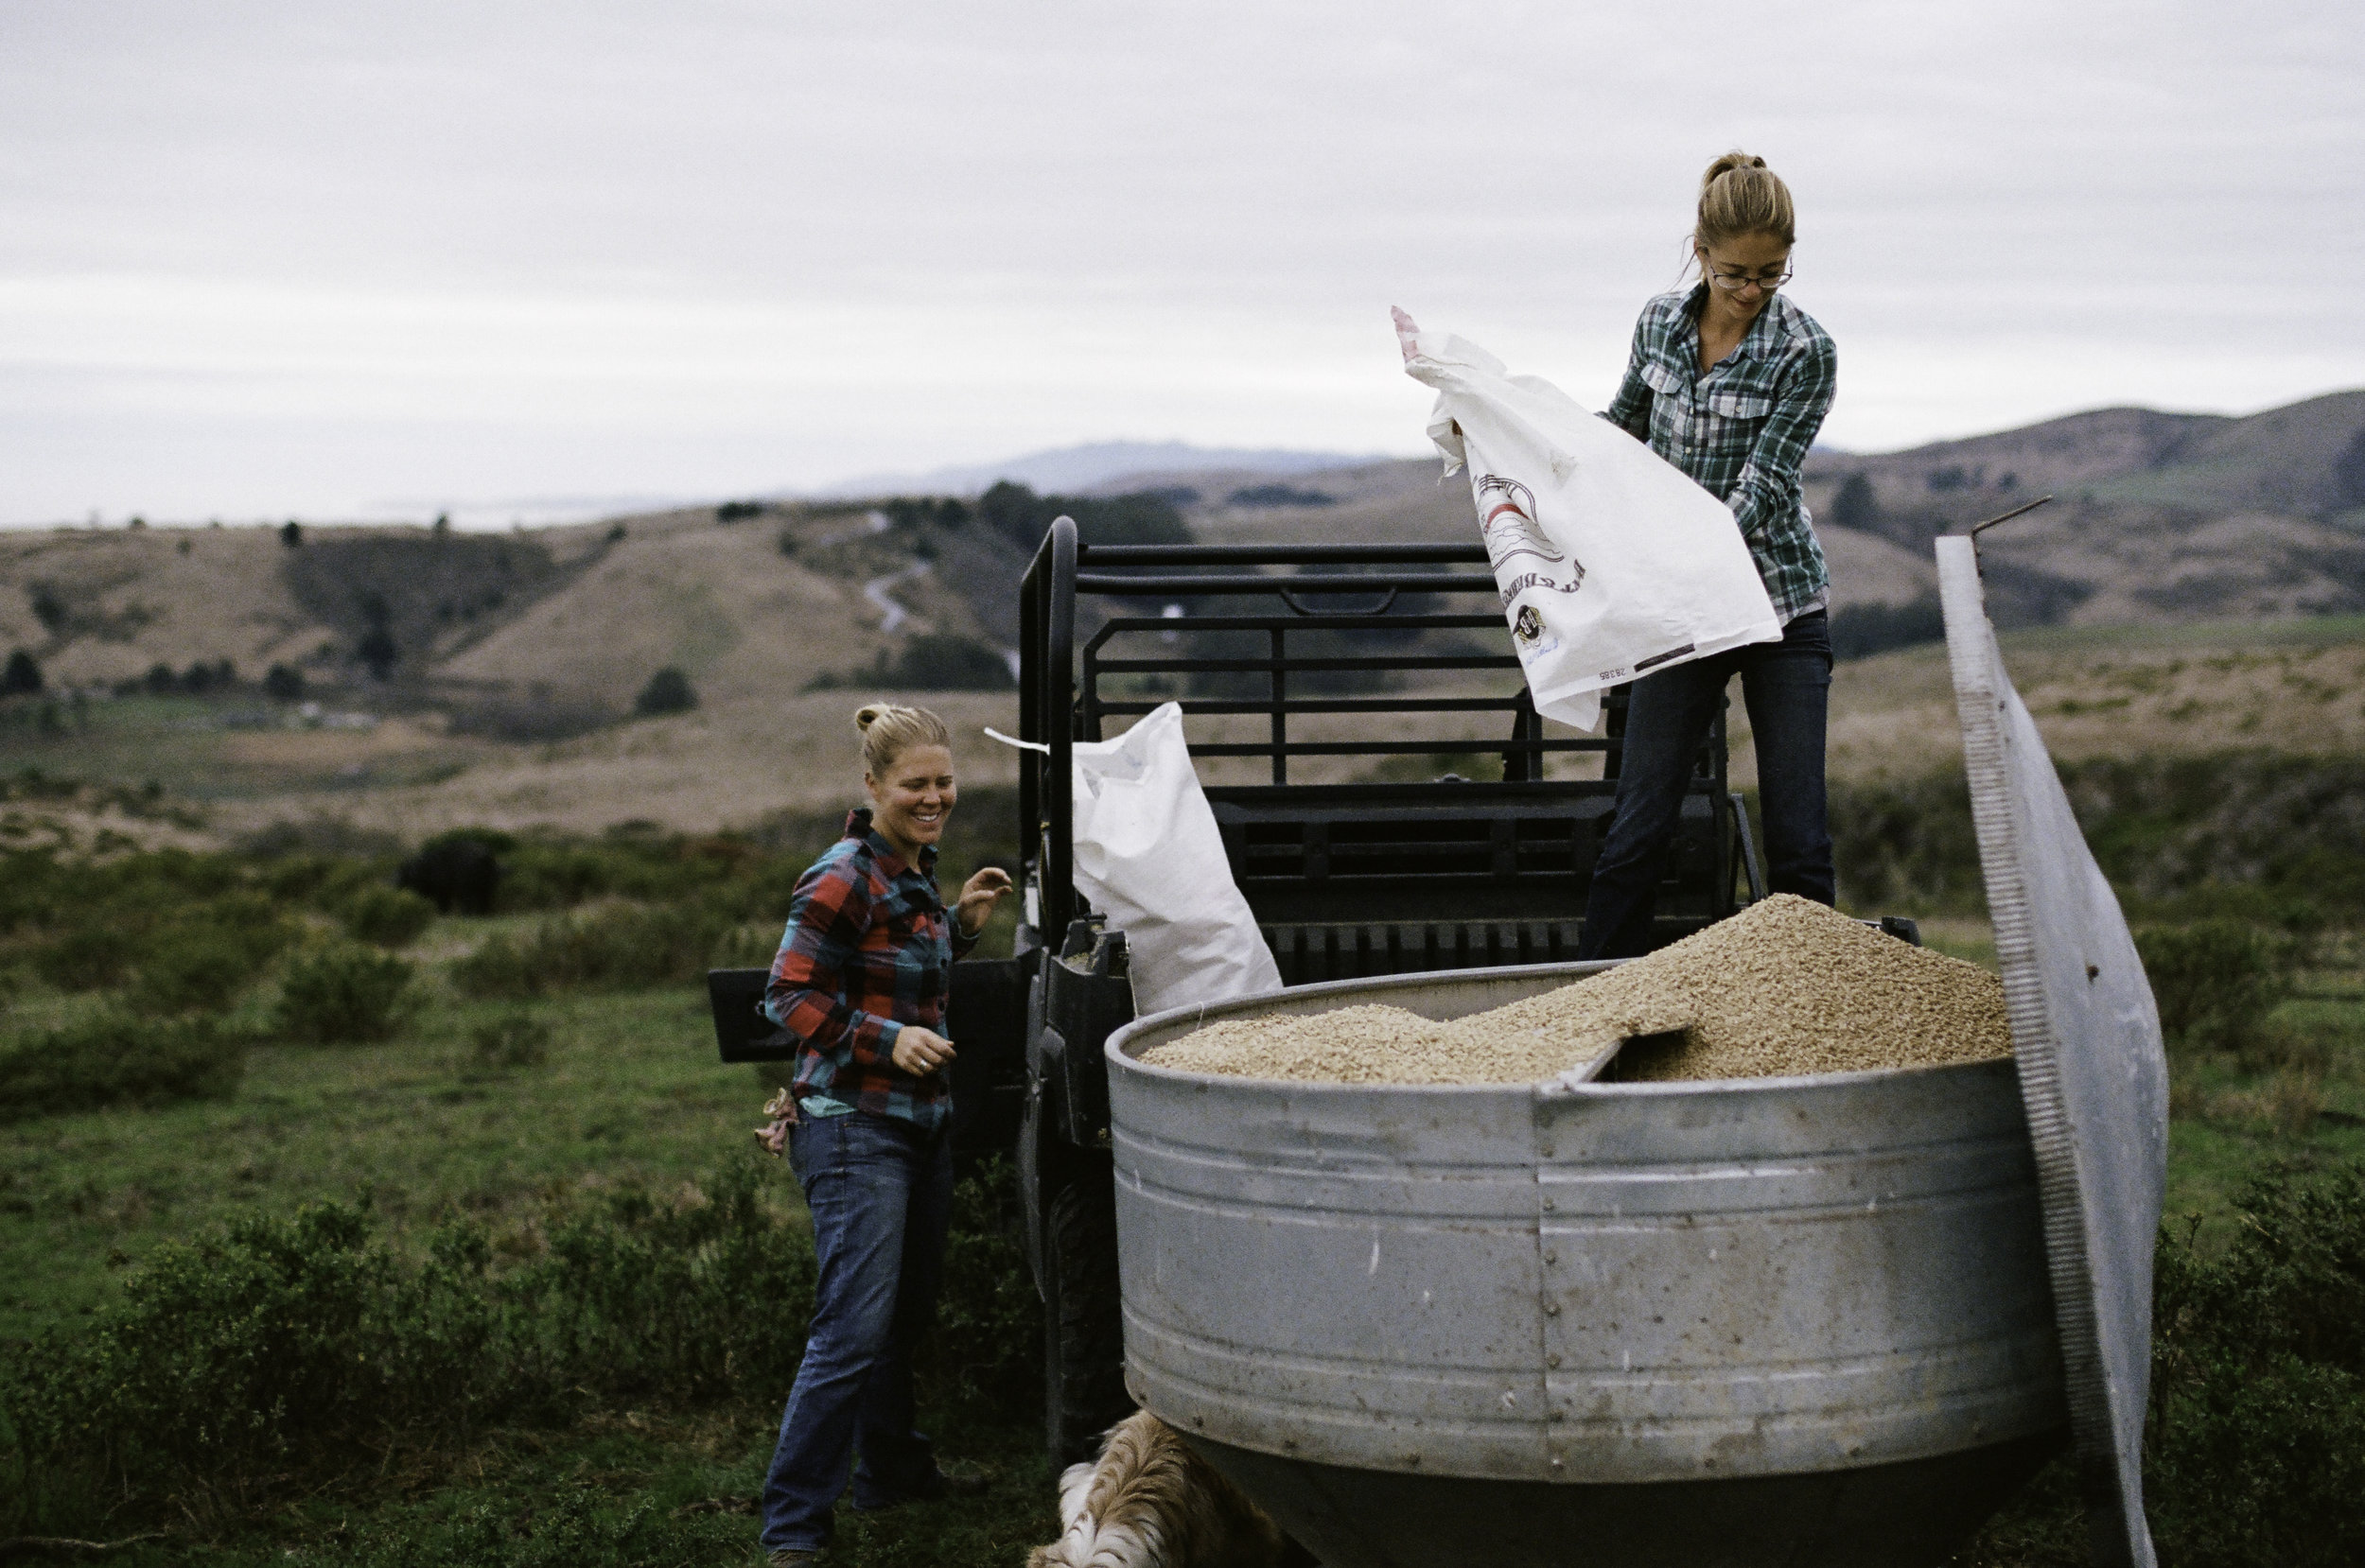 Family friends Ruth Saunders (L) AND Johanna Long (R) fill up the pig feeder. They are fed a varied diet of grass, grains, vegetables and more. - Half Moon Bay, CA